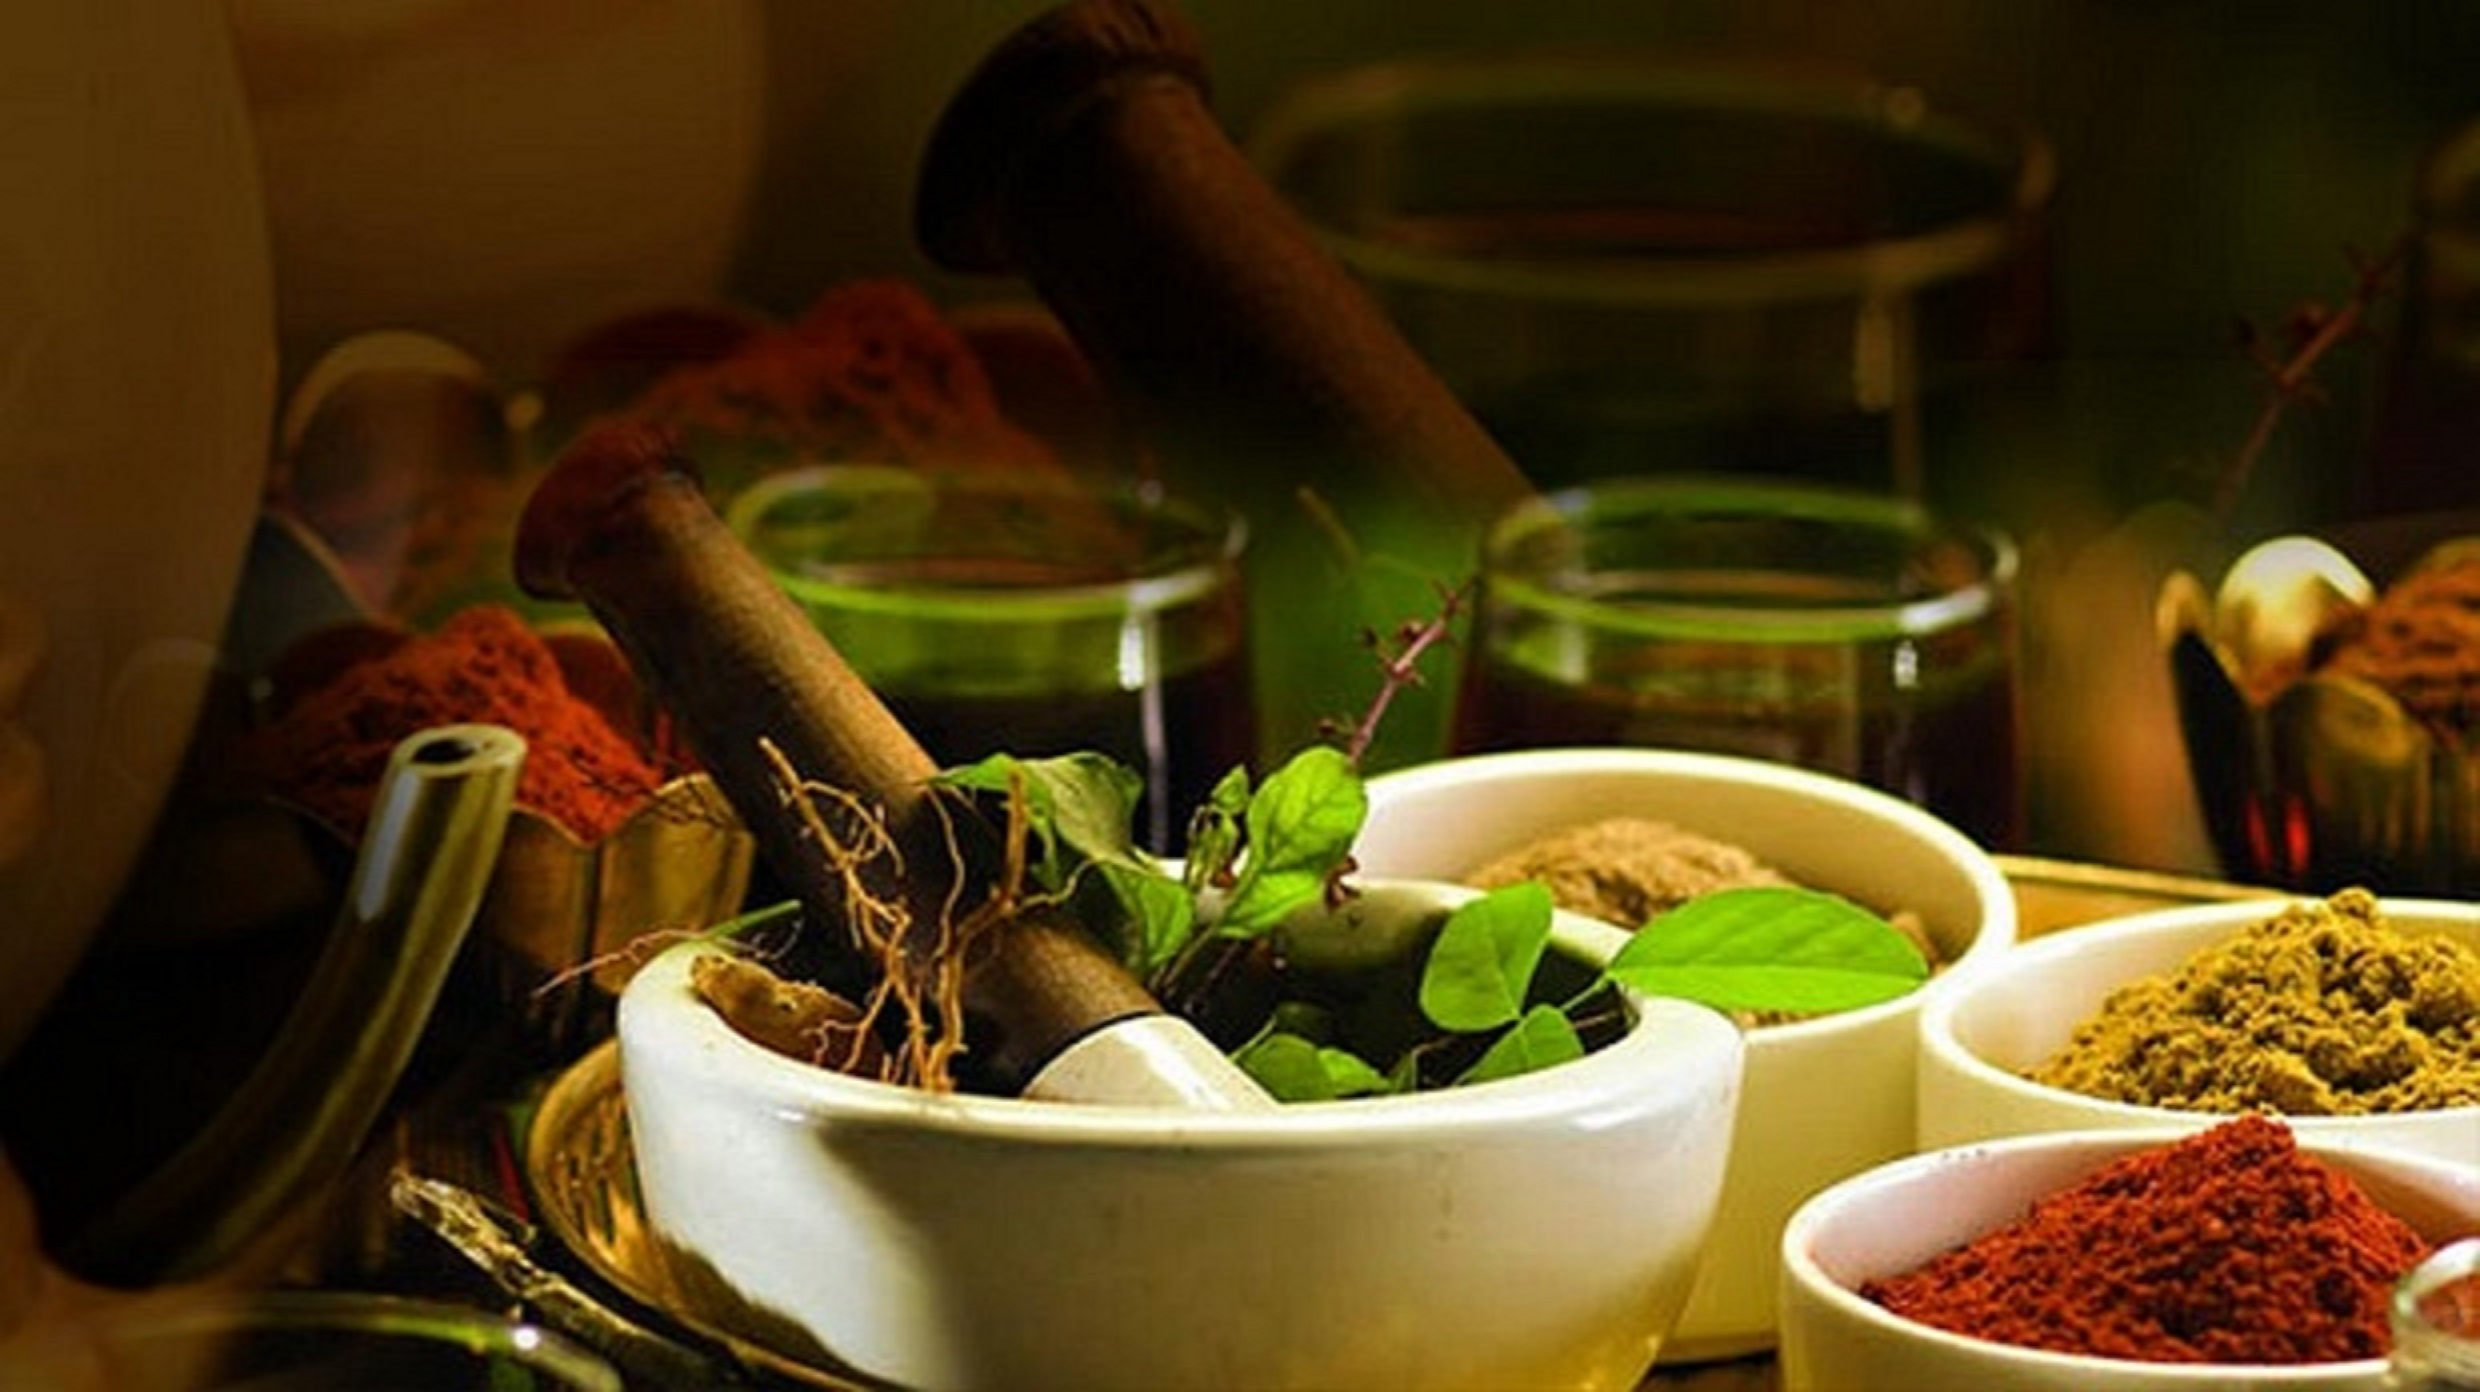 Ayurvedic Products Market Still Has Room to Grow | Emerging Players Dabur , Herbal Hills, Natreon